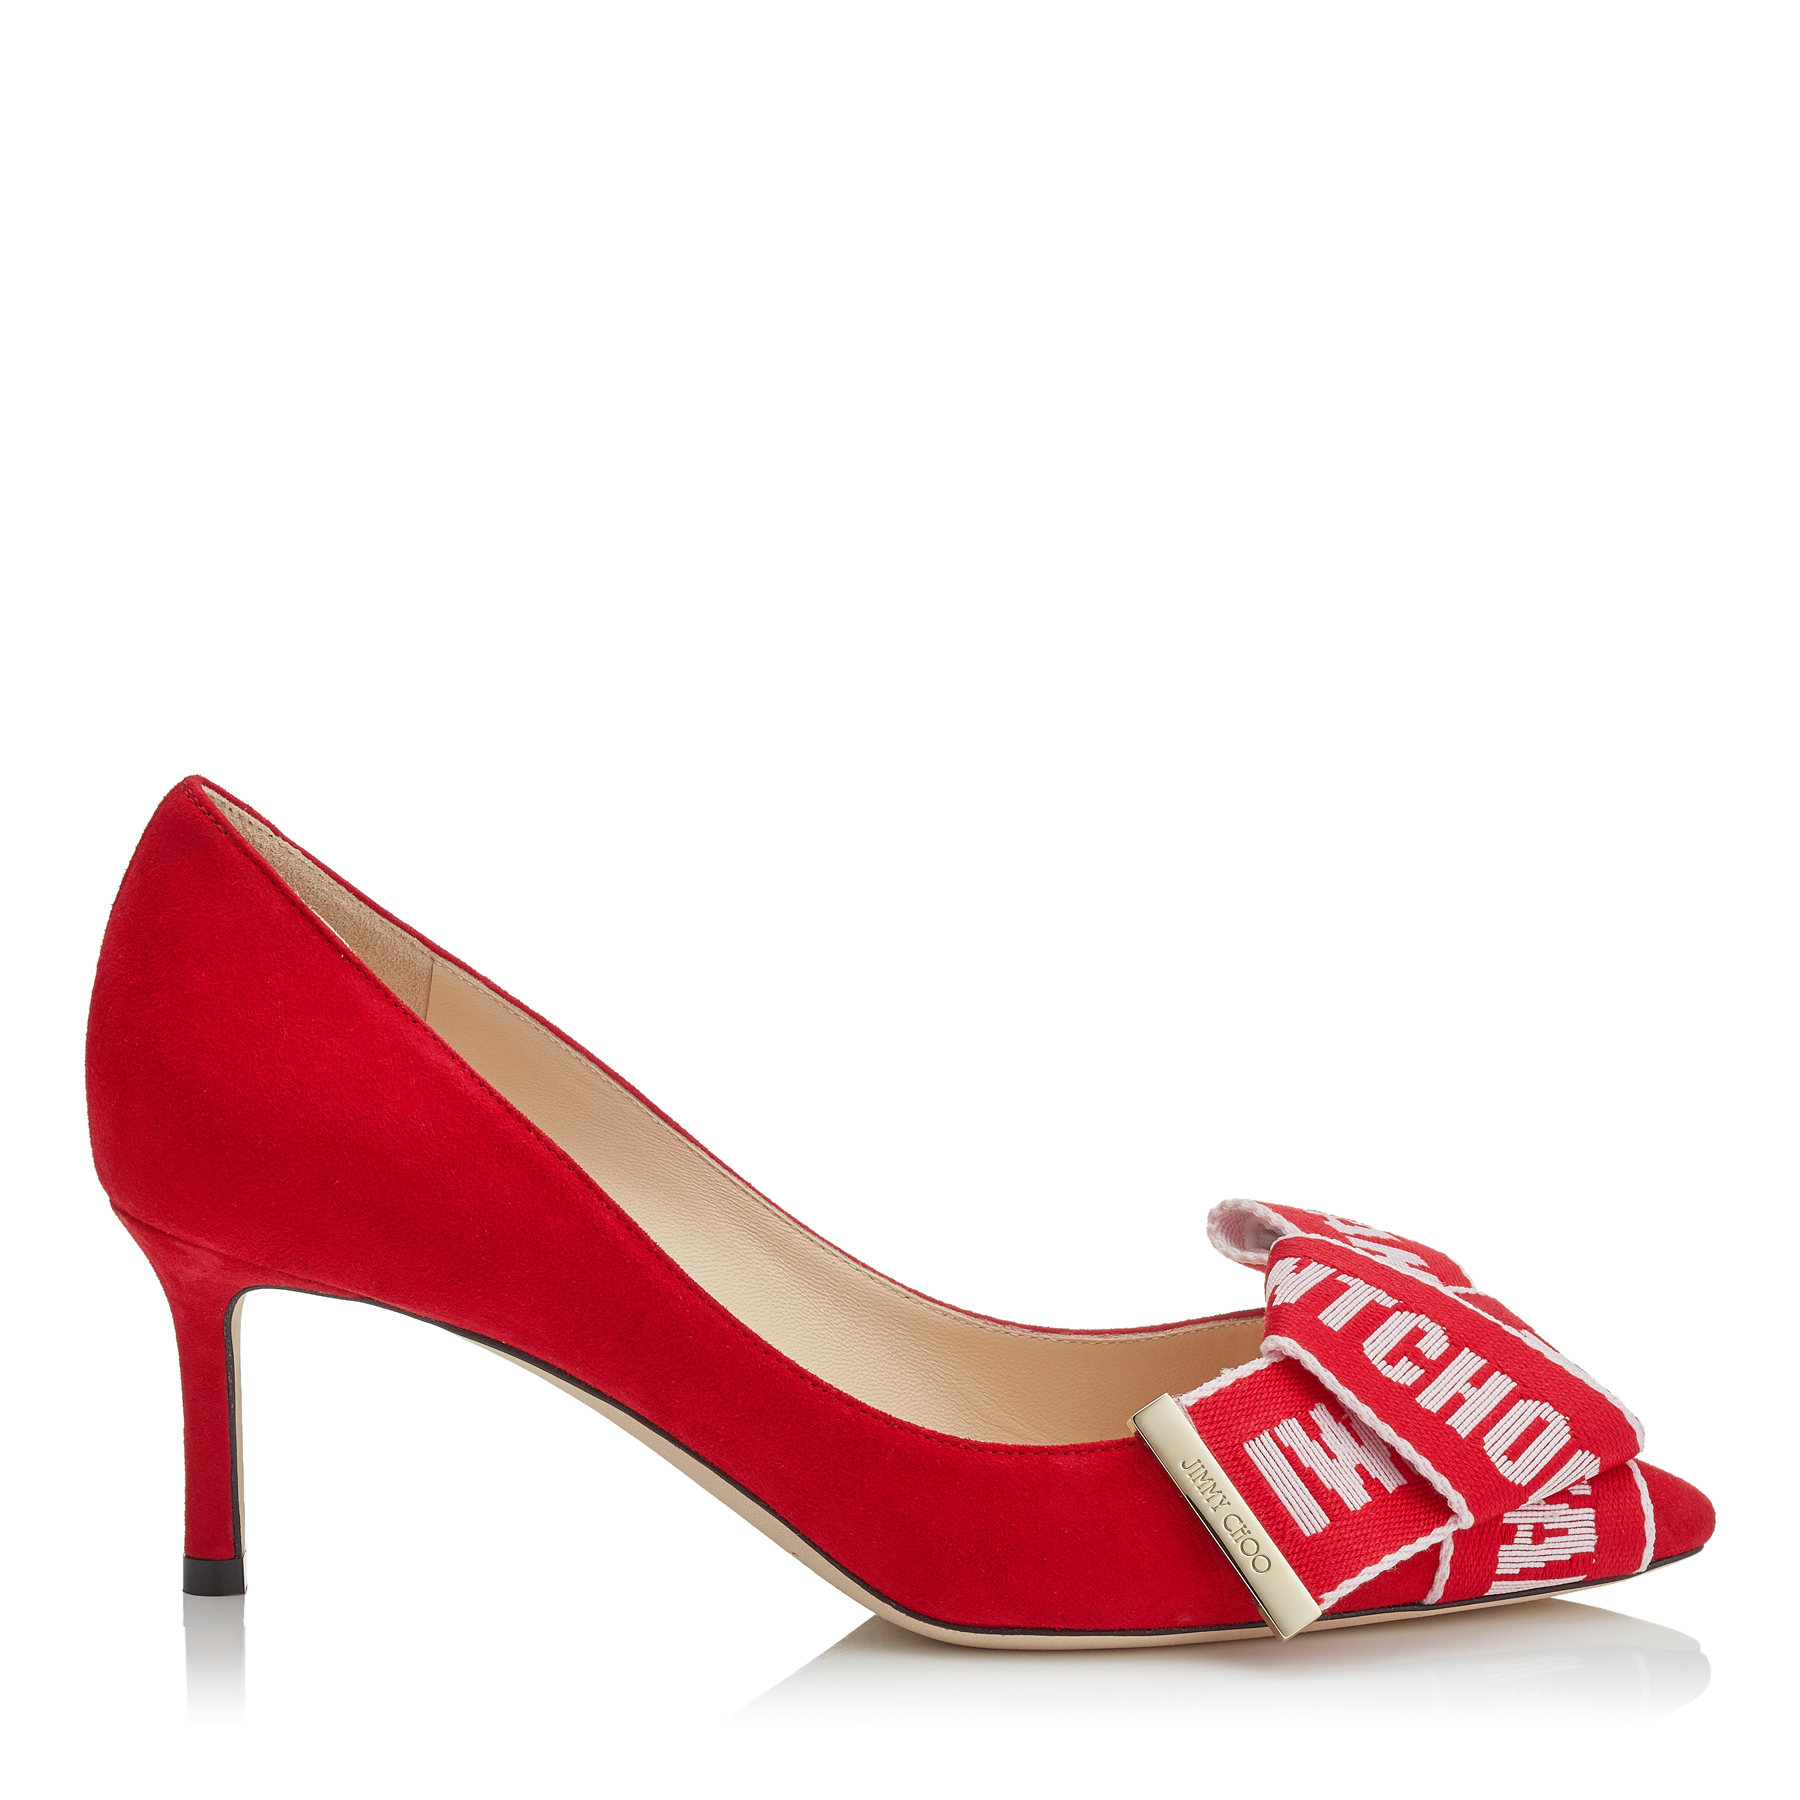 Photo of TEGAN 60 Red Suede Pointy Toe Pumps with Rosewater Logo Tape Bow Detailing by Jimmy Choo womens shoes - buy Jimmy Choo footwear online